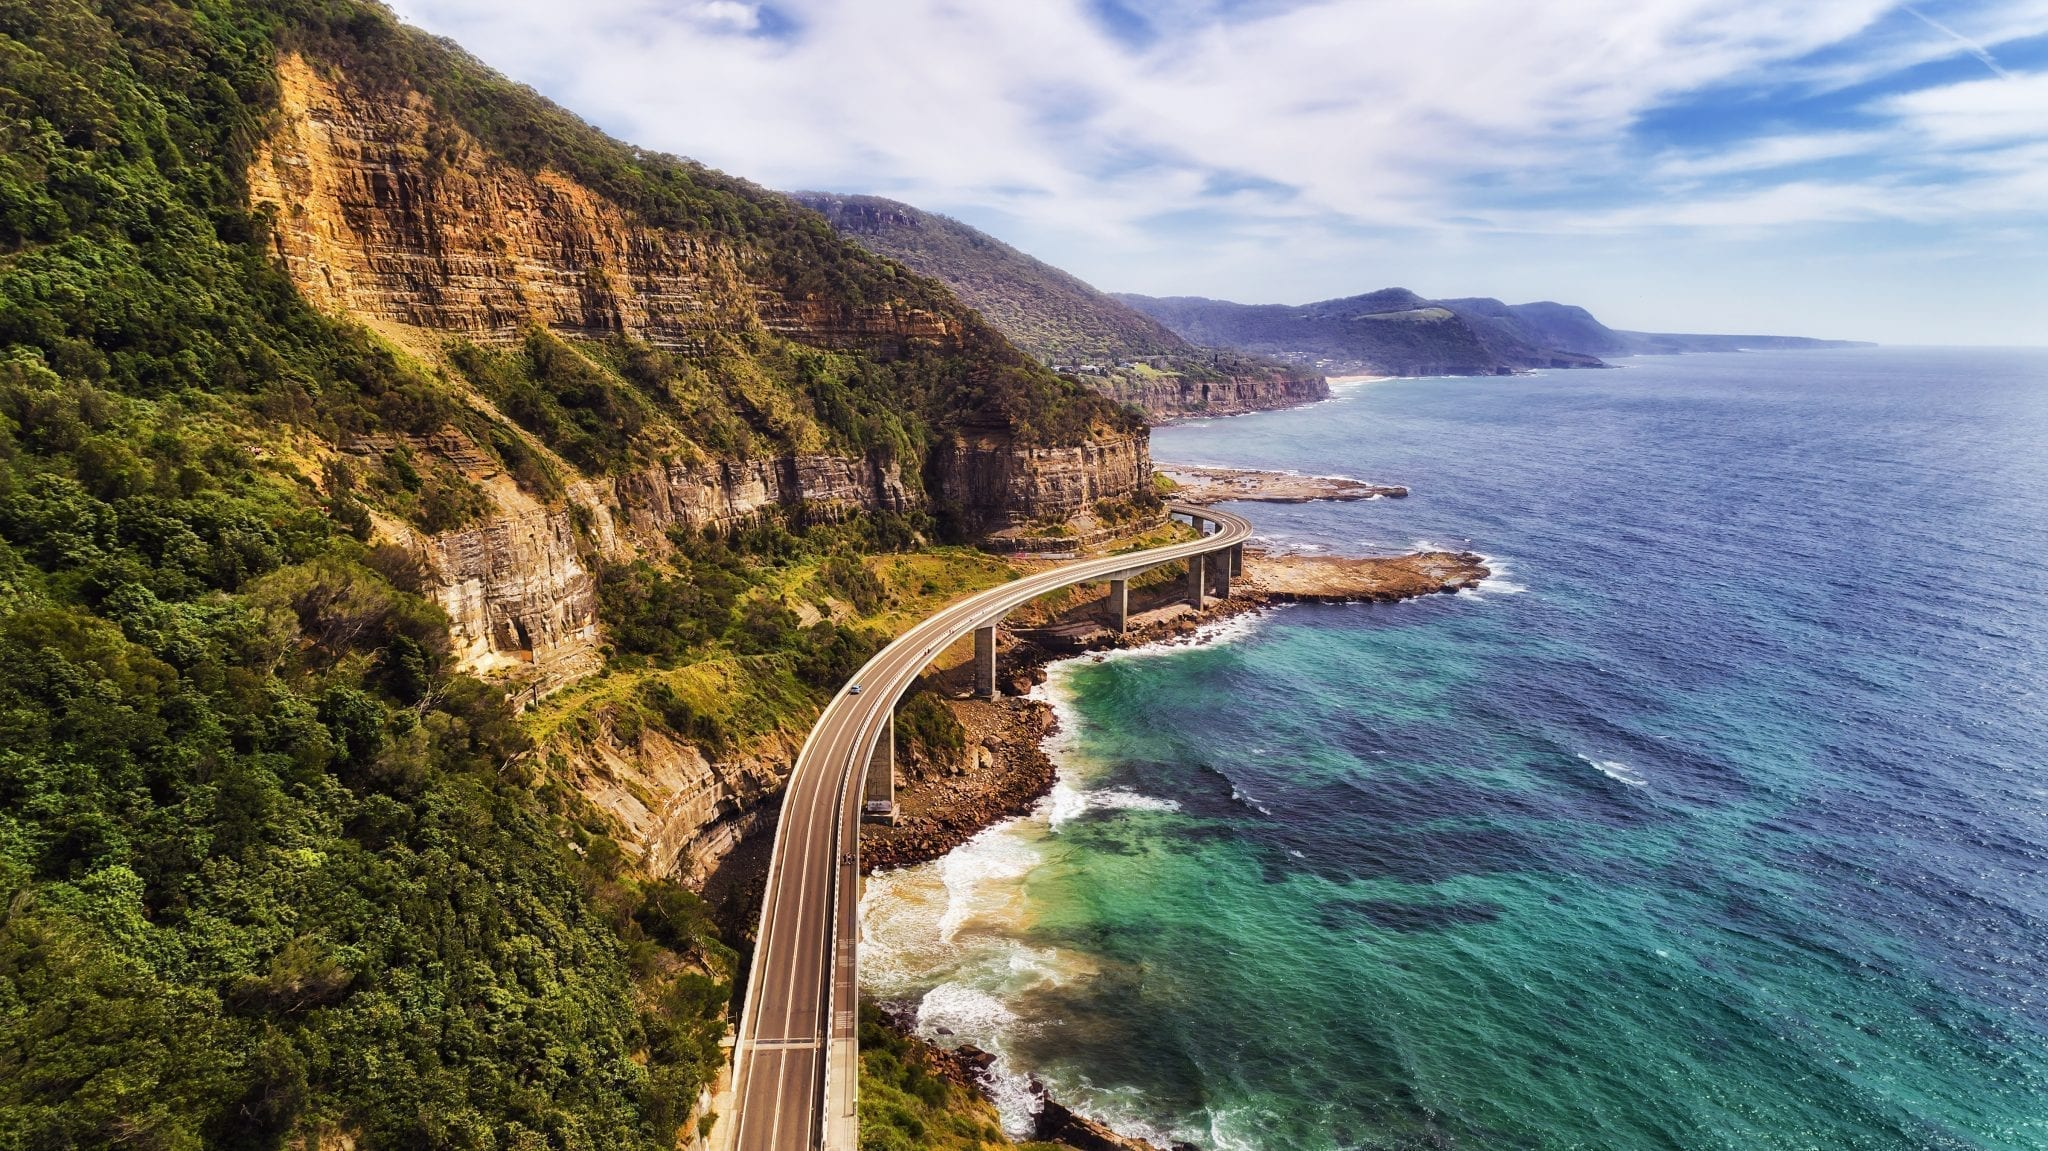 Pacific Coast Highway California shot from above, one of the best romantic vacations for couples in the United States